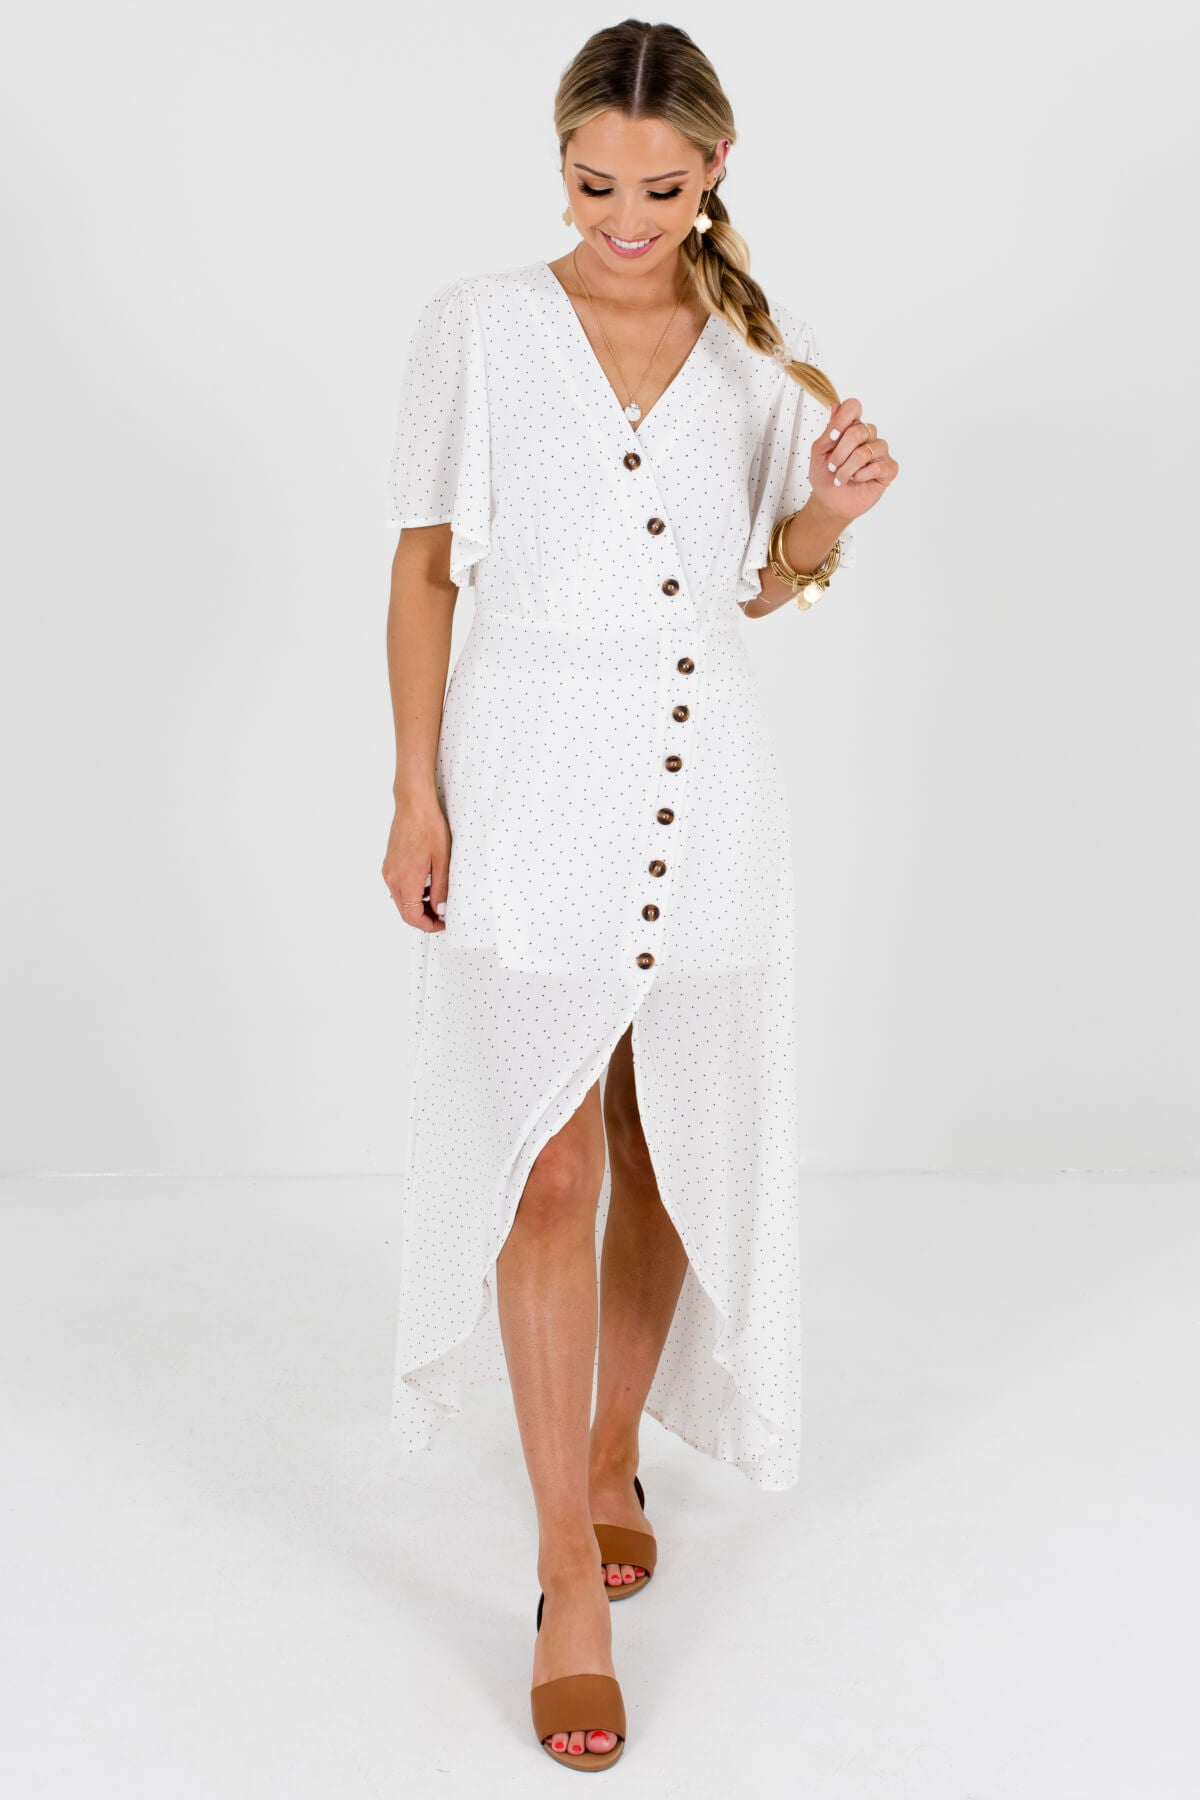 White and Black Polka Dot Patterned Boutique Maxi Dresses for Women